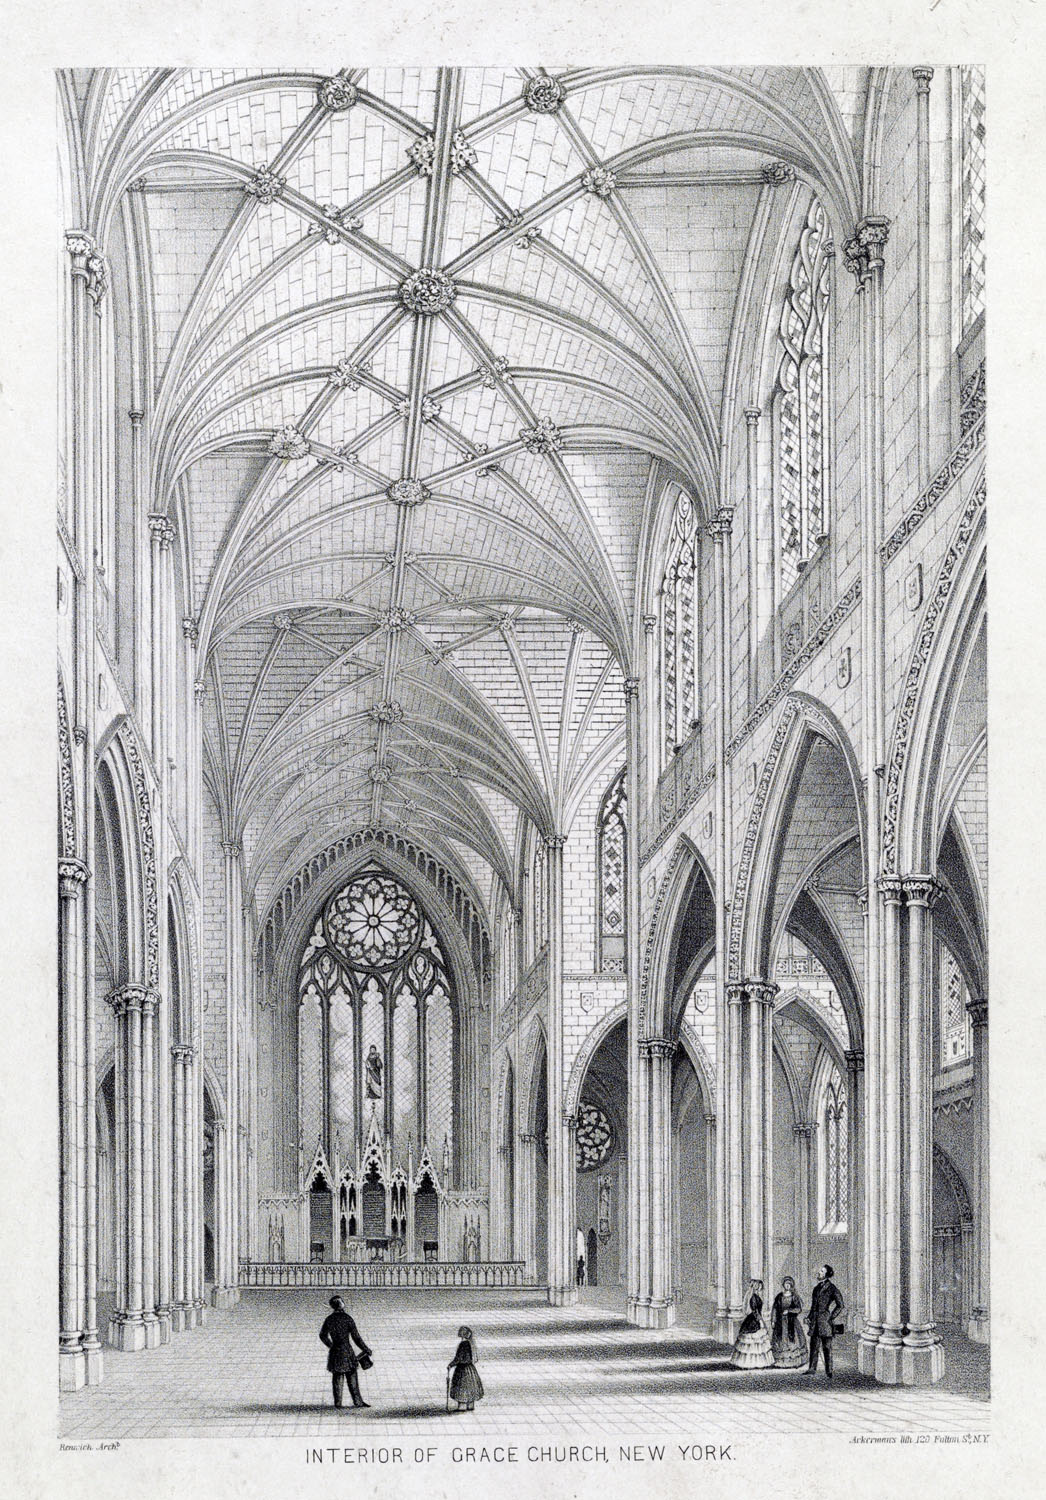 Architectural rendering of the interior of Grace Church, Library of Congress